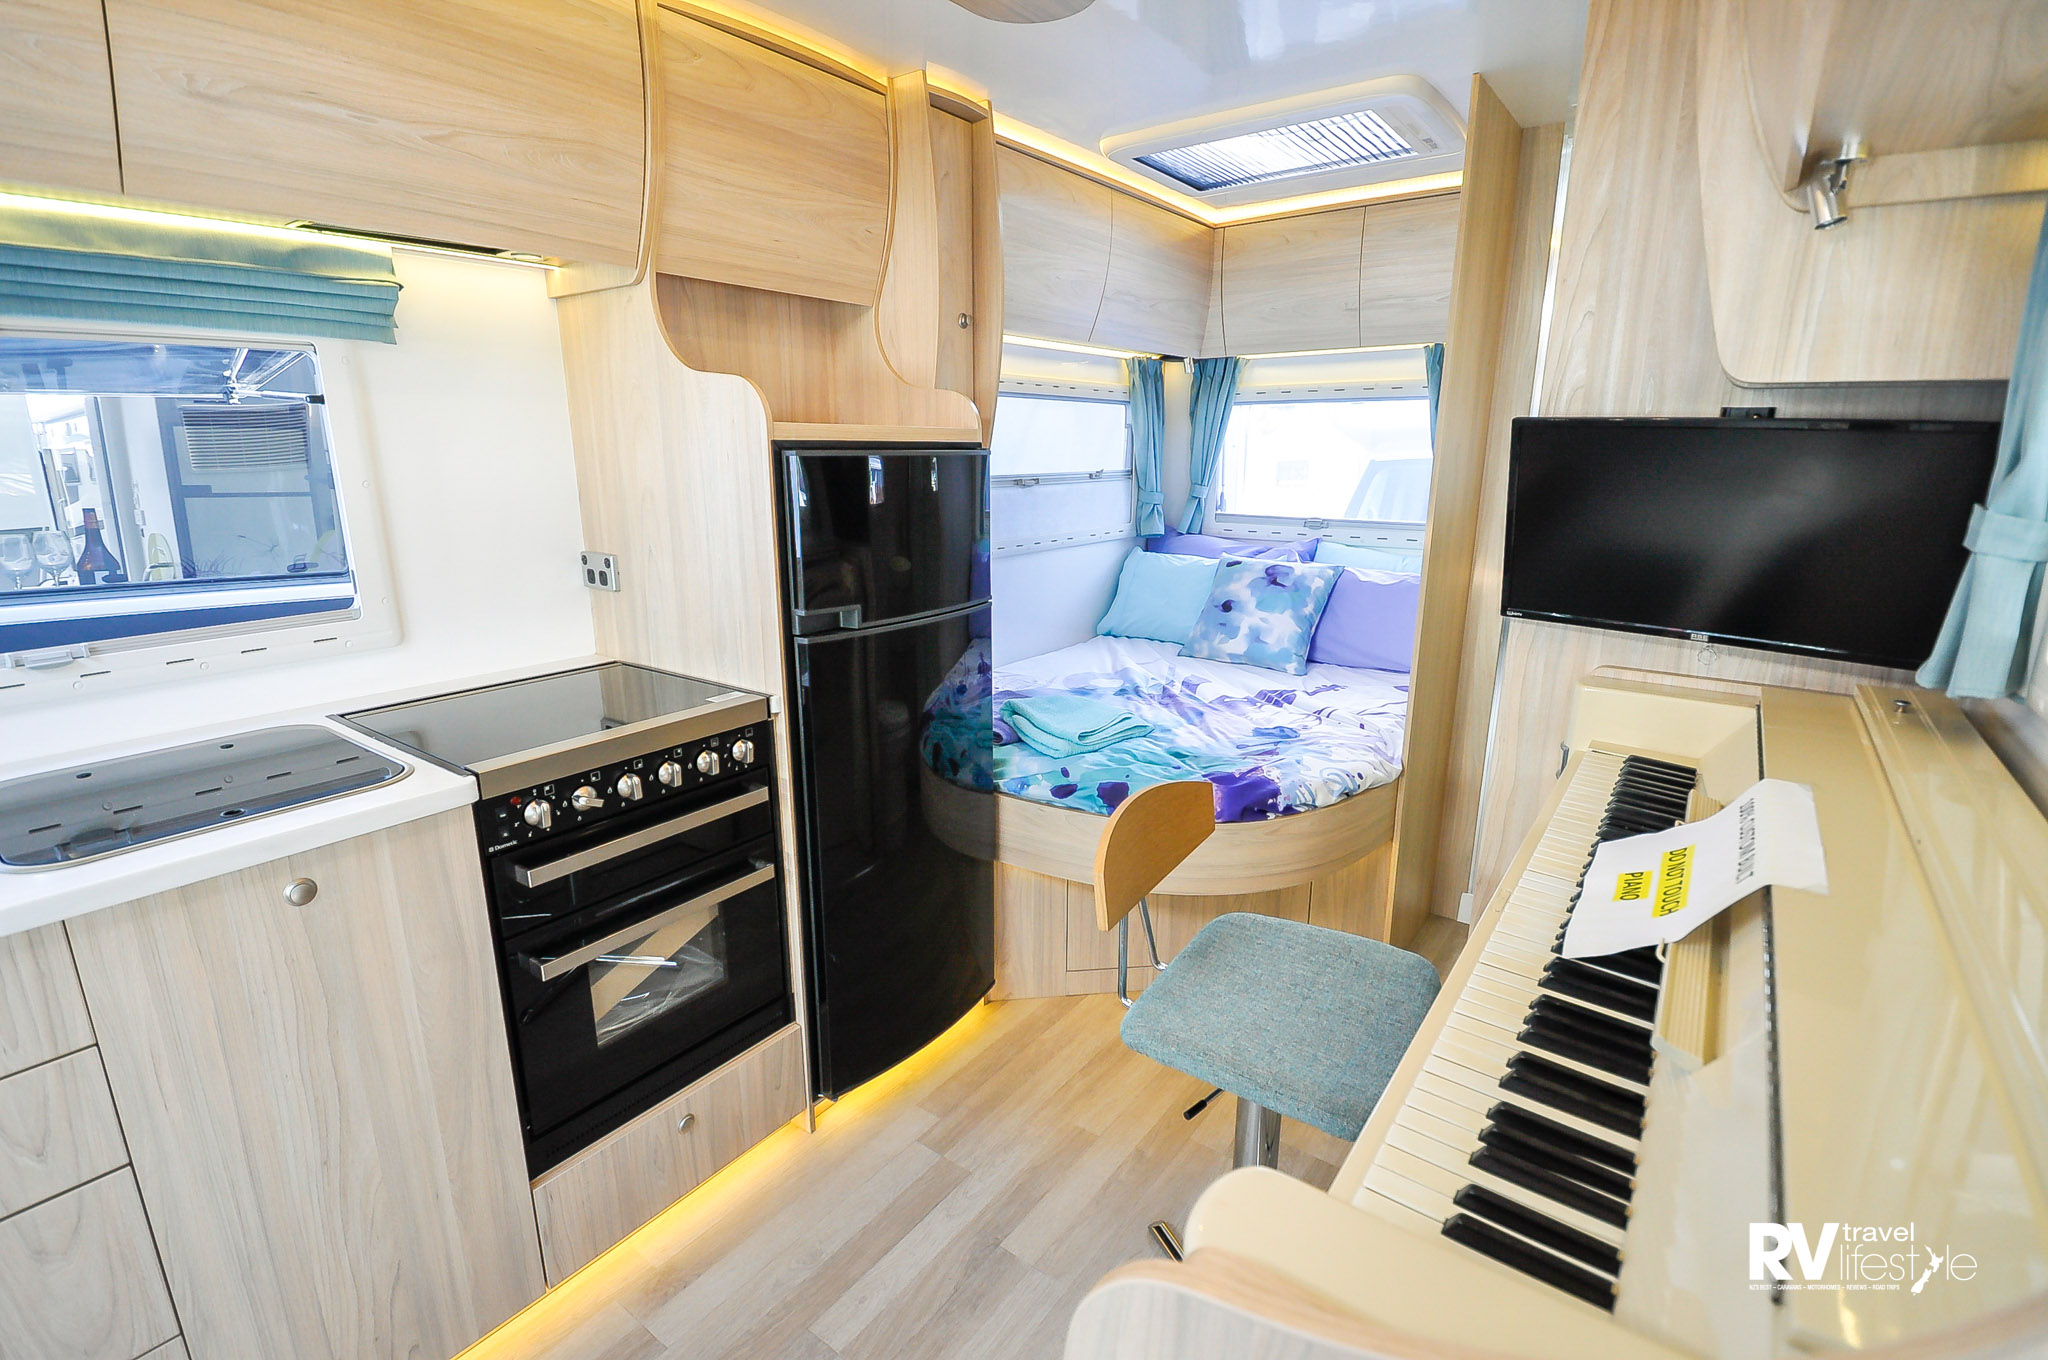 A built-in piano is just one of the features that makes this RV special – note the permanent double-bed